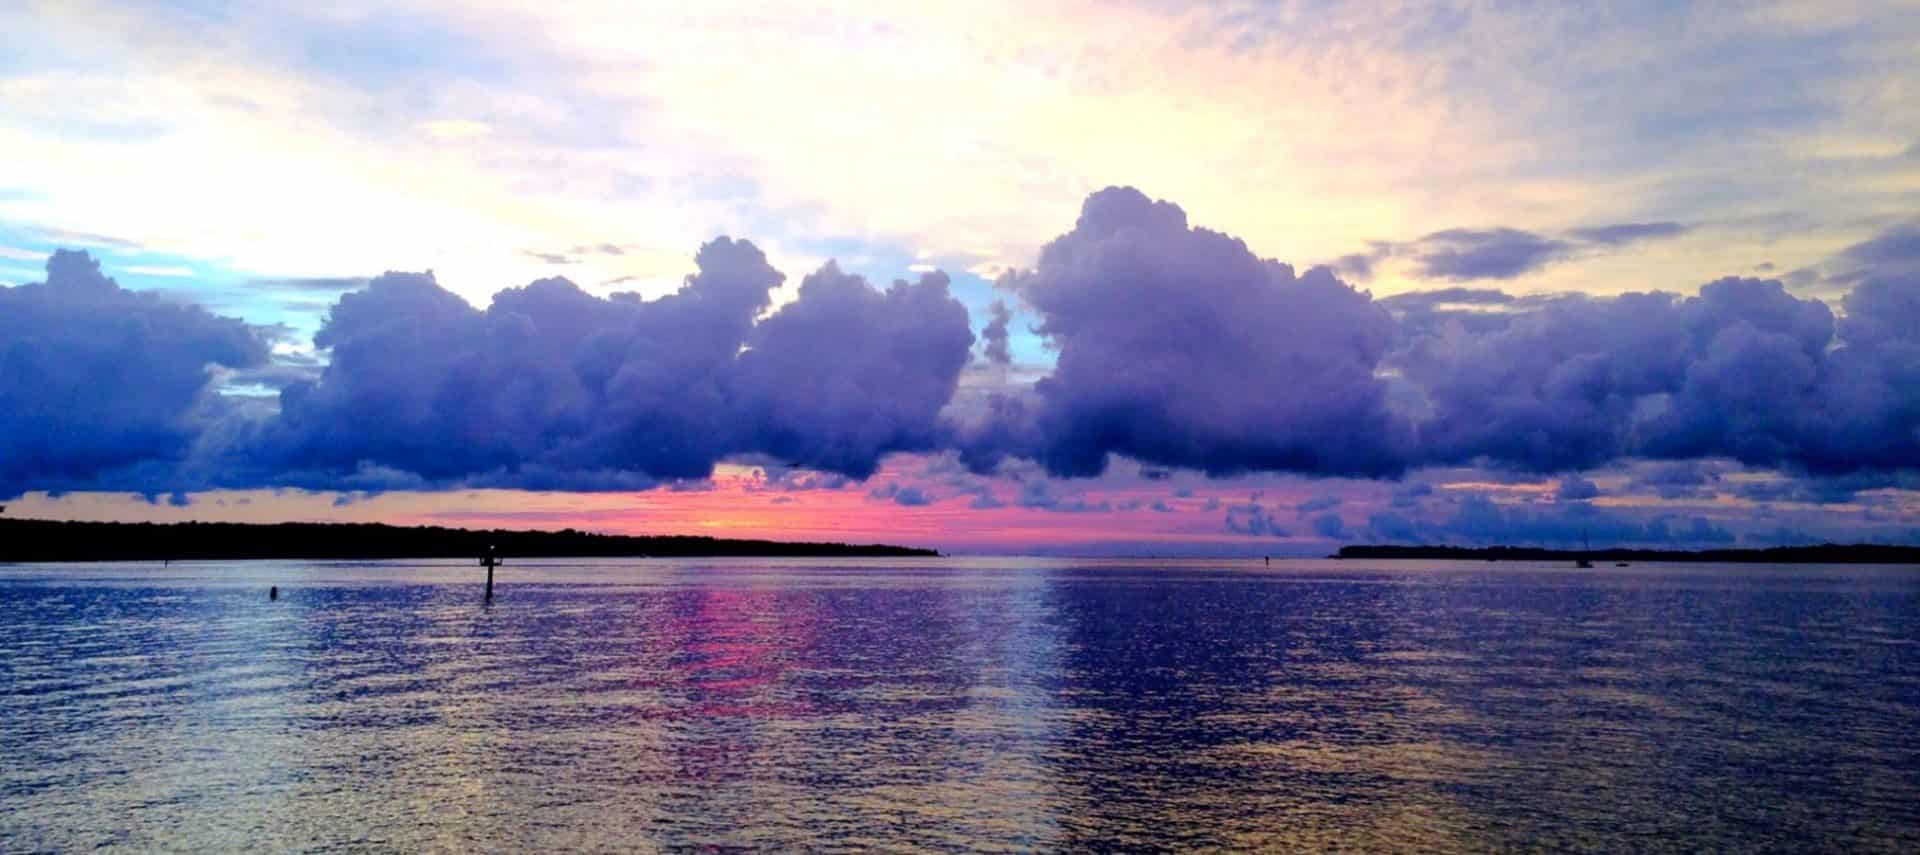 View of the bay with land in the background at sunset with blue, purple and pink clouds in the sky